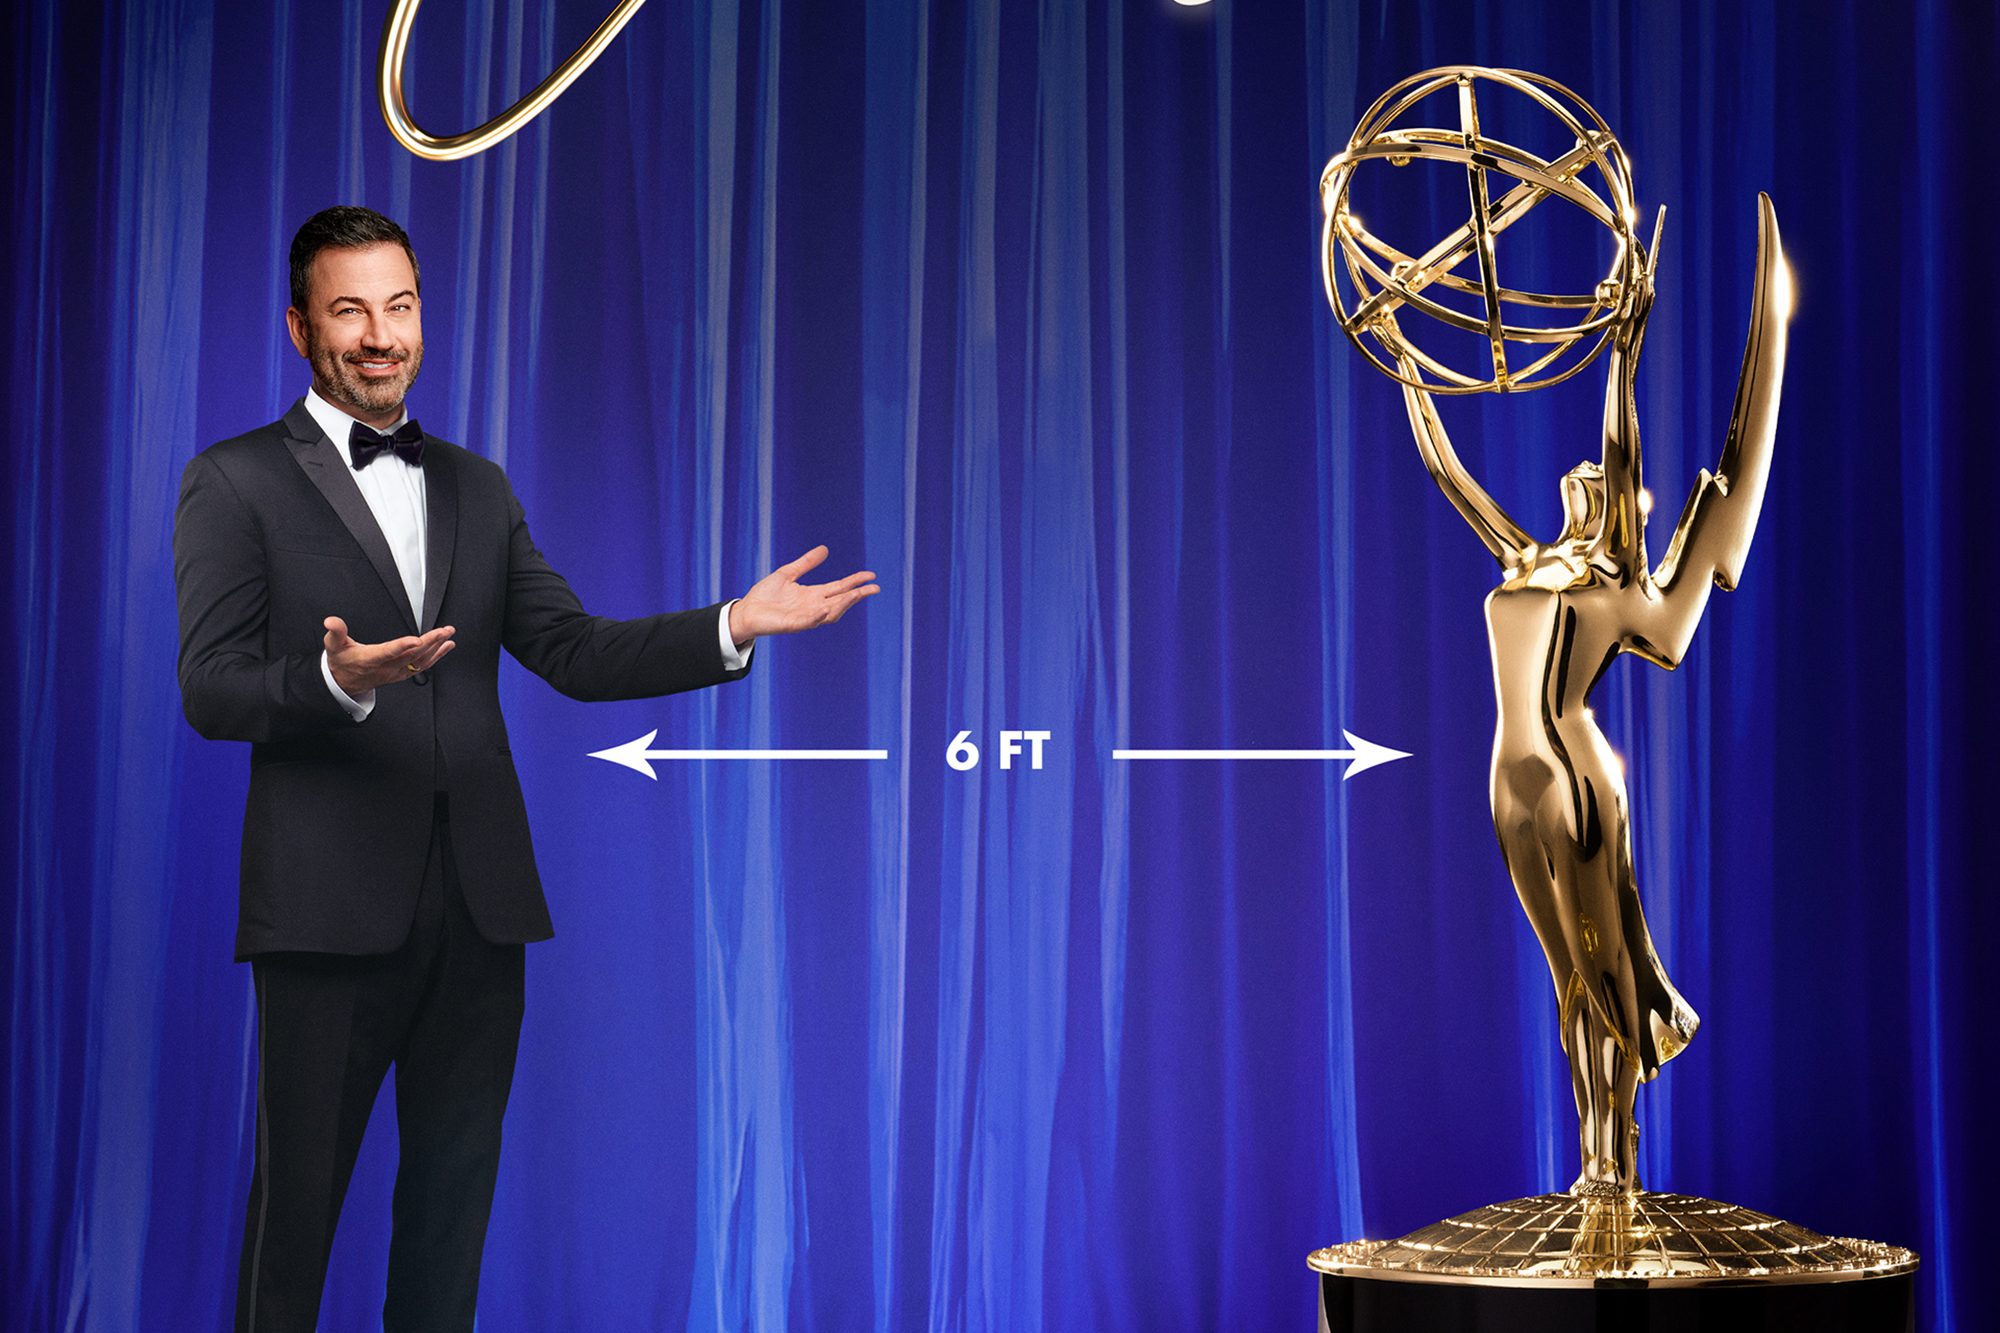 Jimmy Kimmel's Emmys 2020 monologue: 'Welcome to the pandemmies'